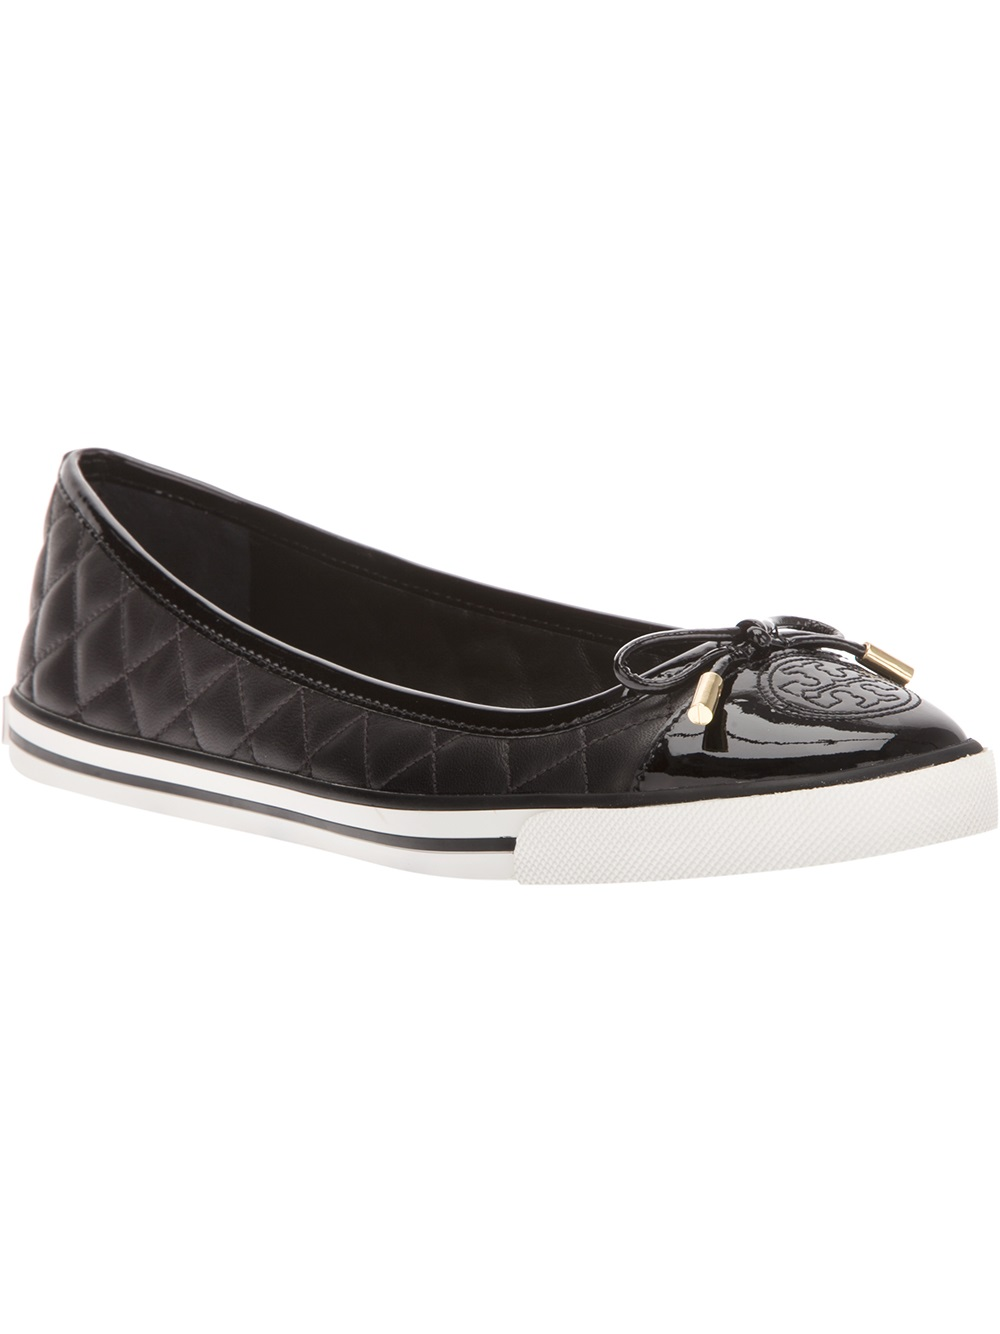 Black Leather Quilted Slipon Shoes